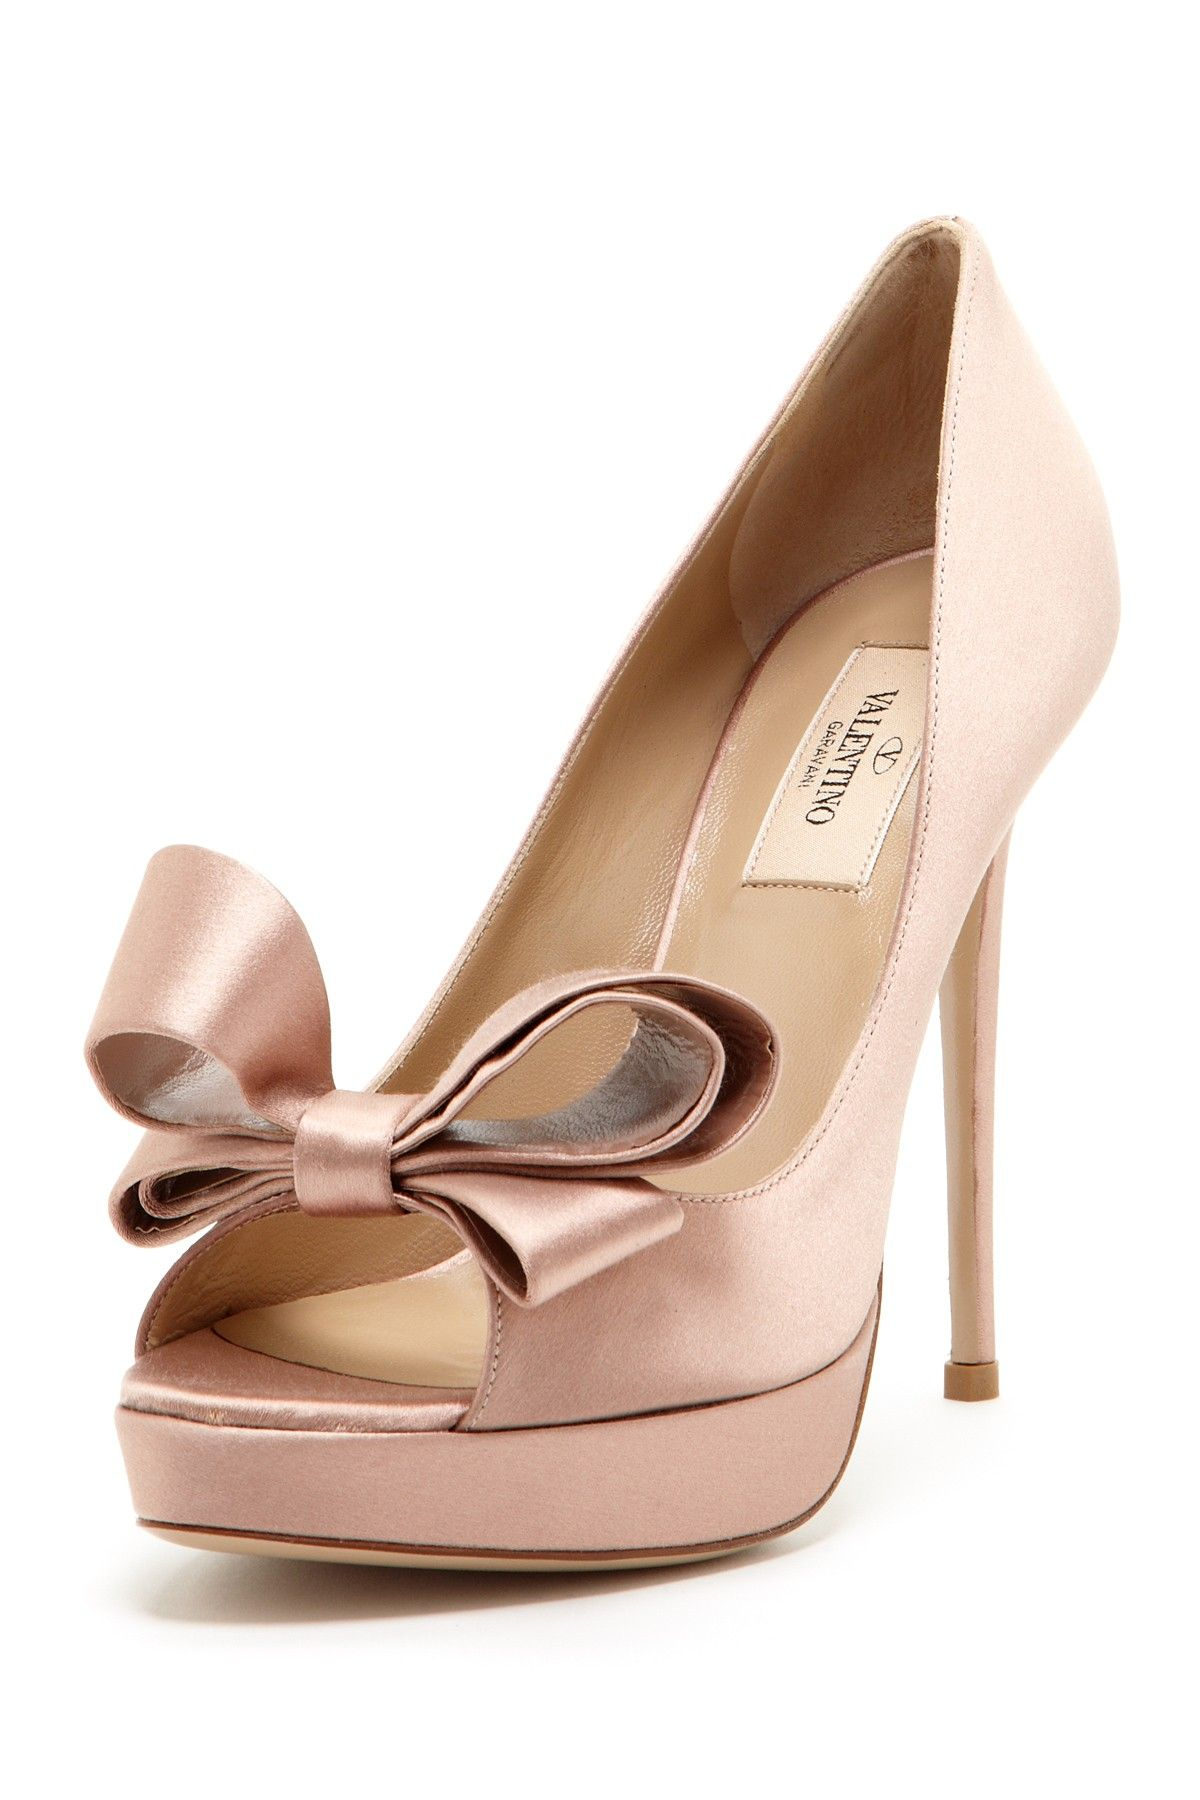 Valentino Satin Peep-Toe Pumps cheap price for sale nicekicks sale online buy cheap supply best seller online clearance 2014 new YlKt6UnY0z